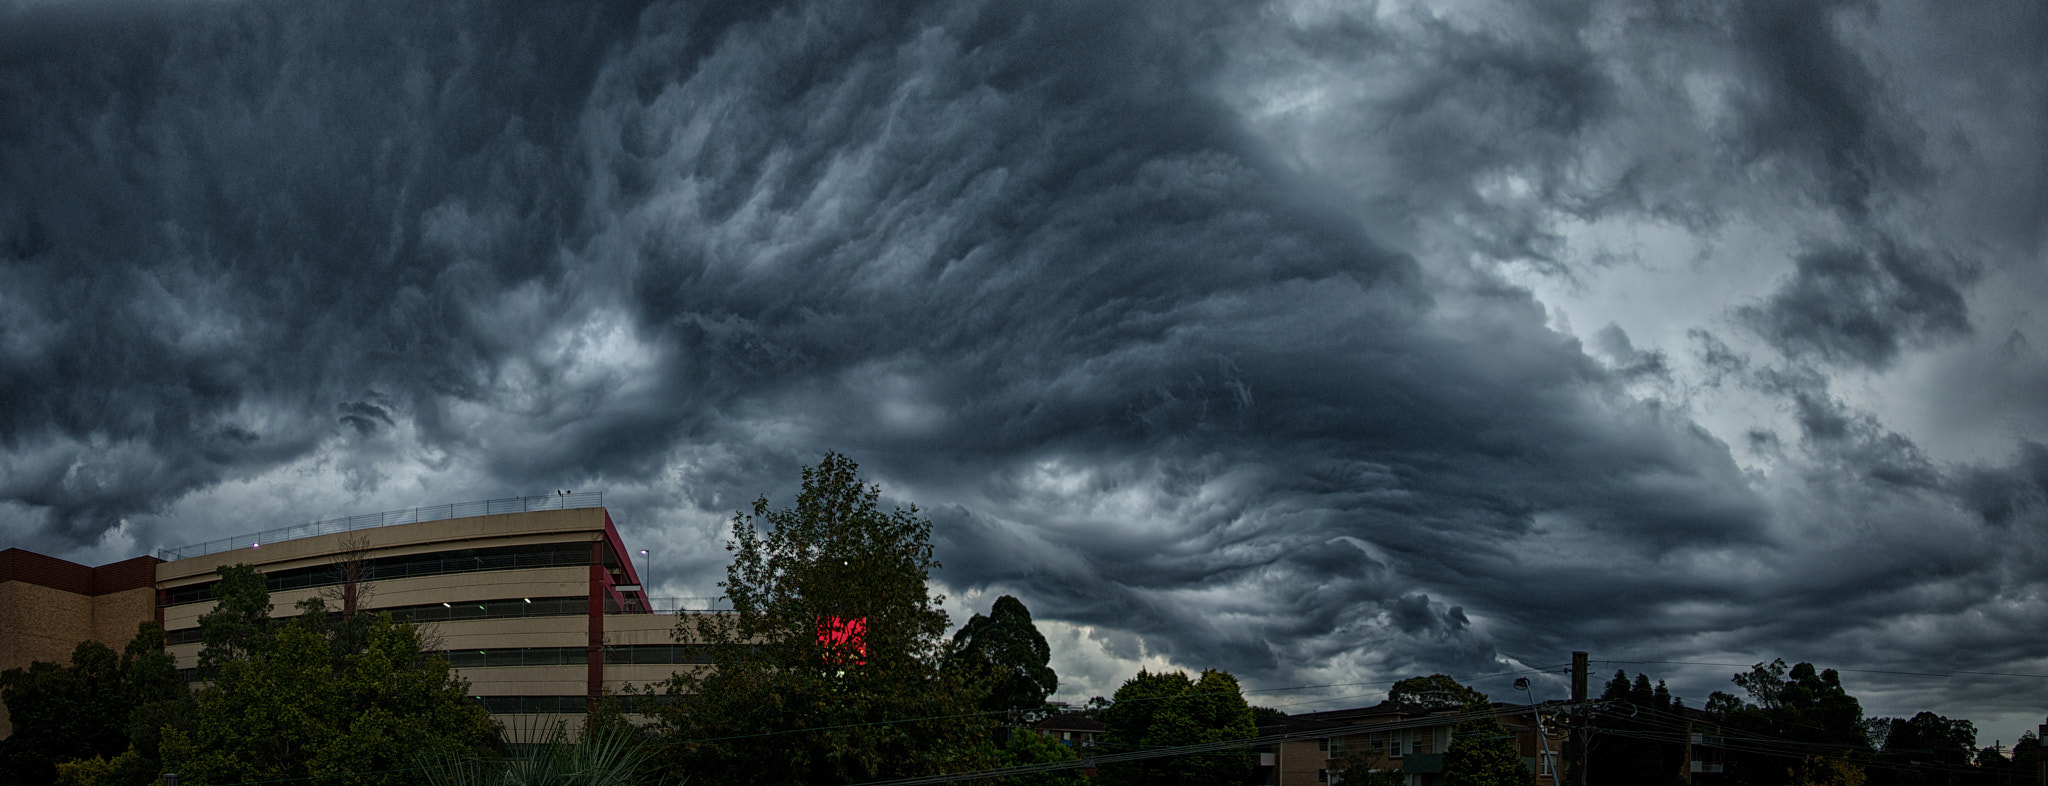 Photograph Hornsby Storm Panorama by James Cook on 500px